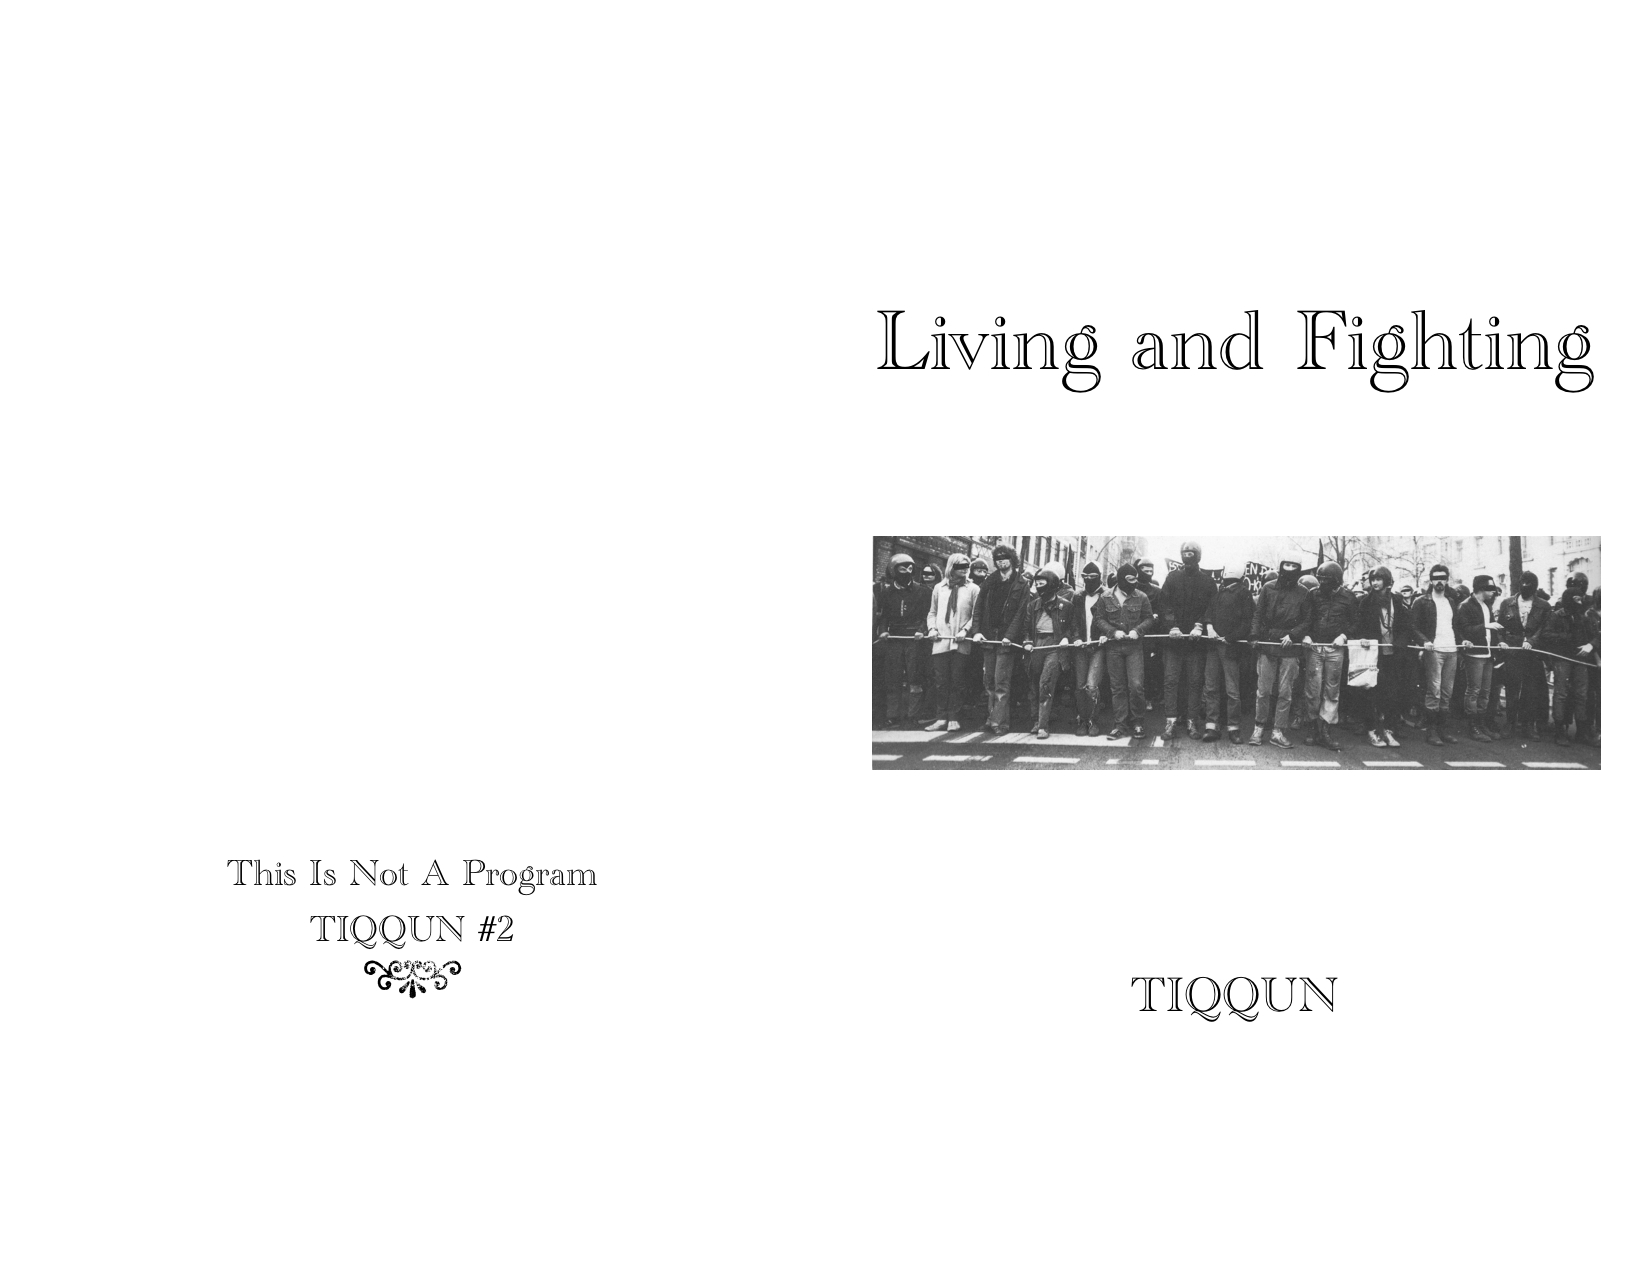 livingandfightingcover